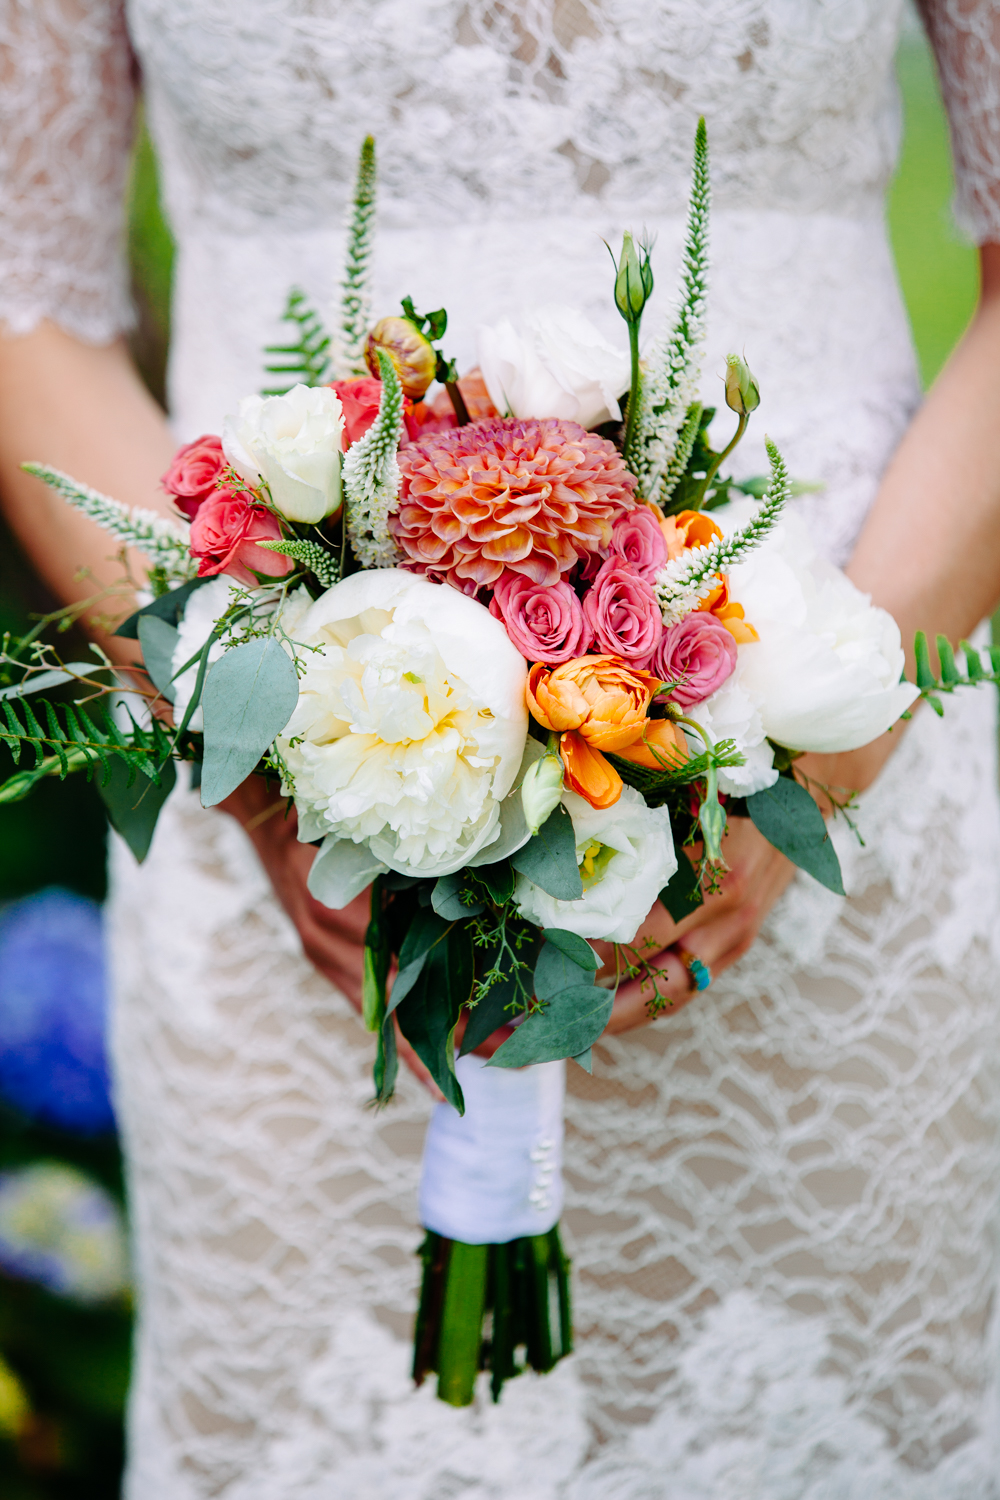 A close up of a brides flowers